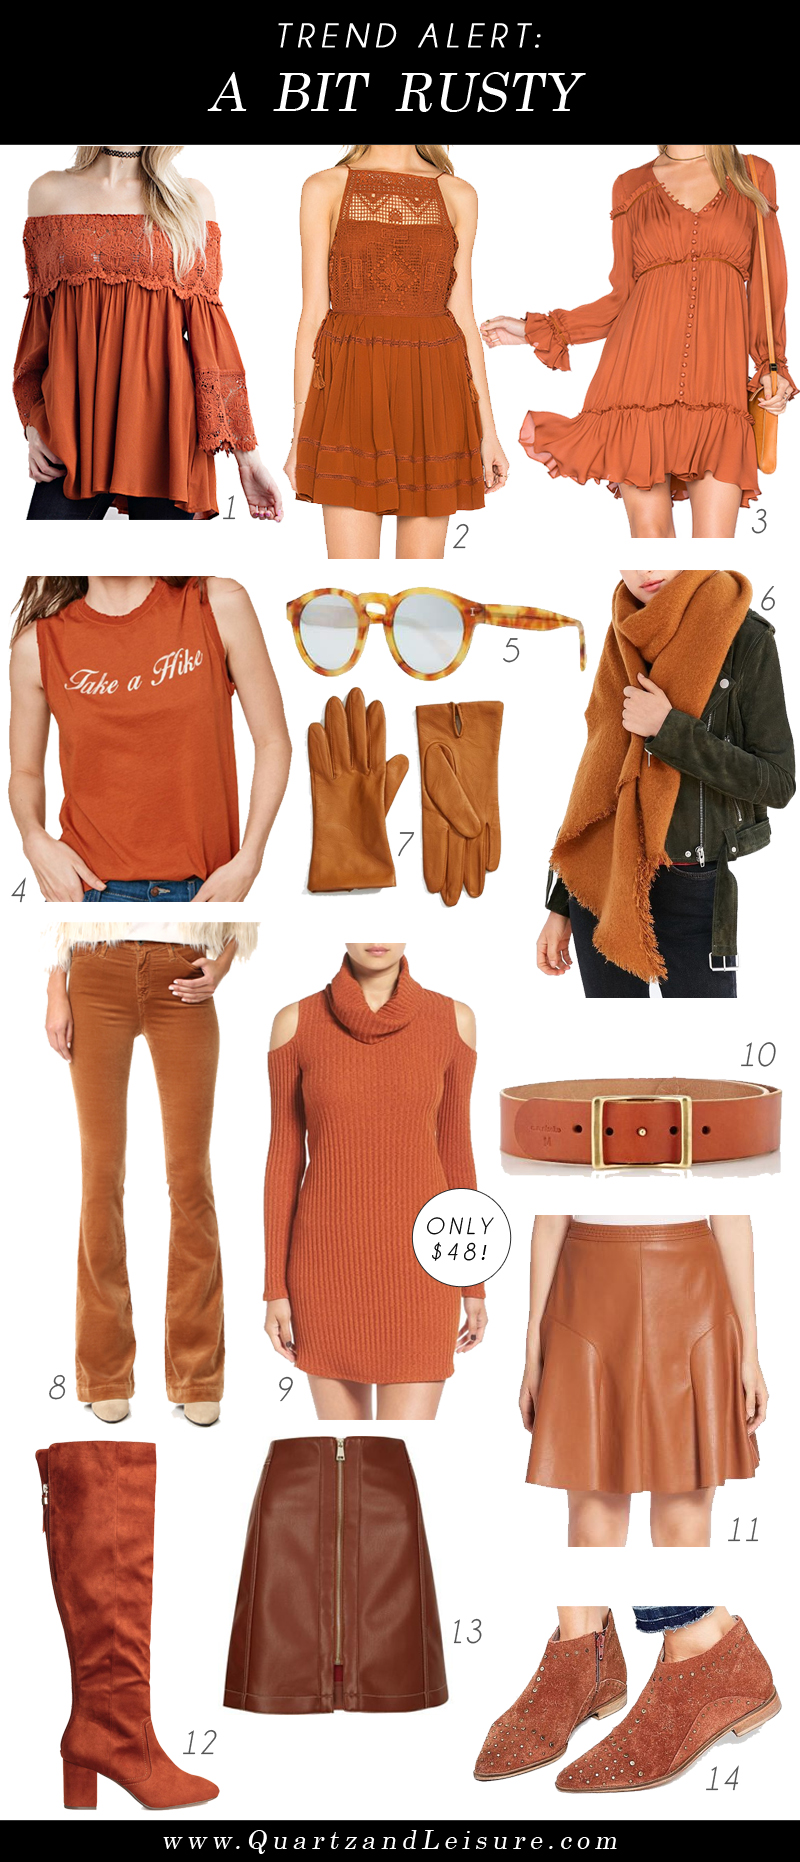 Feeling a Bit Rusty - a hot color trend for Fall